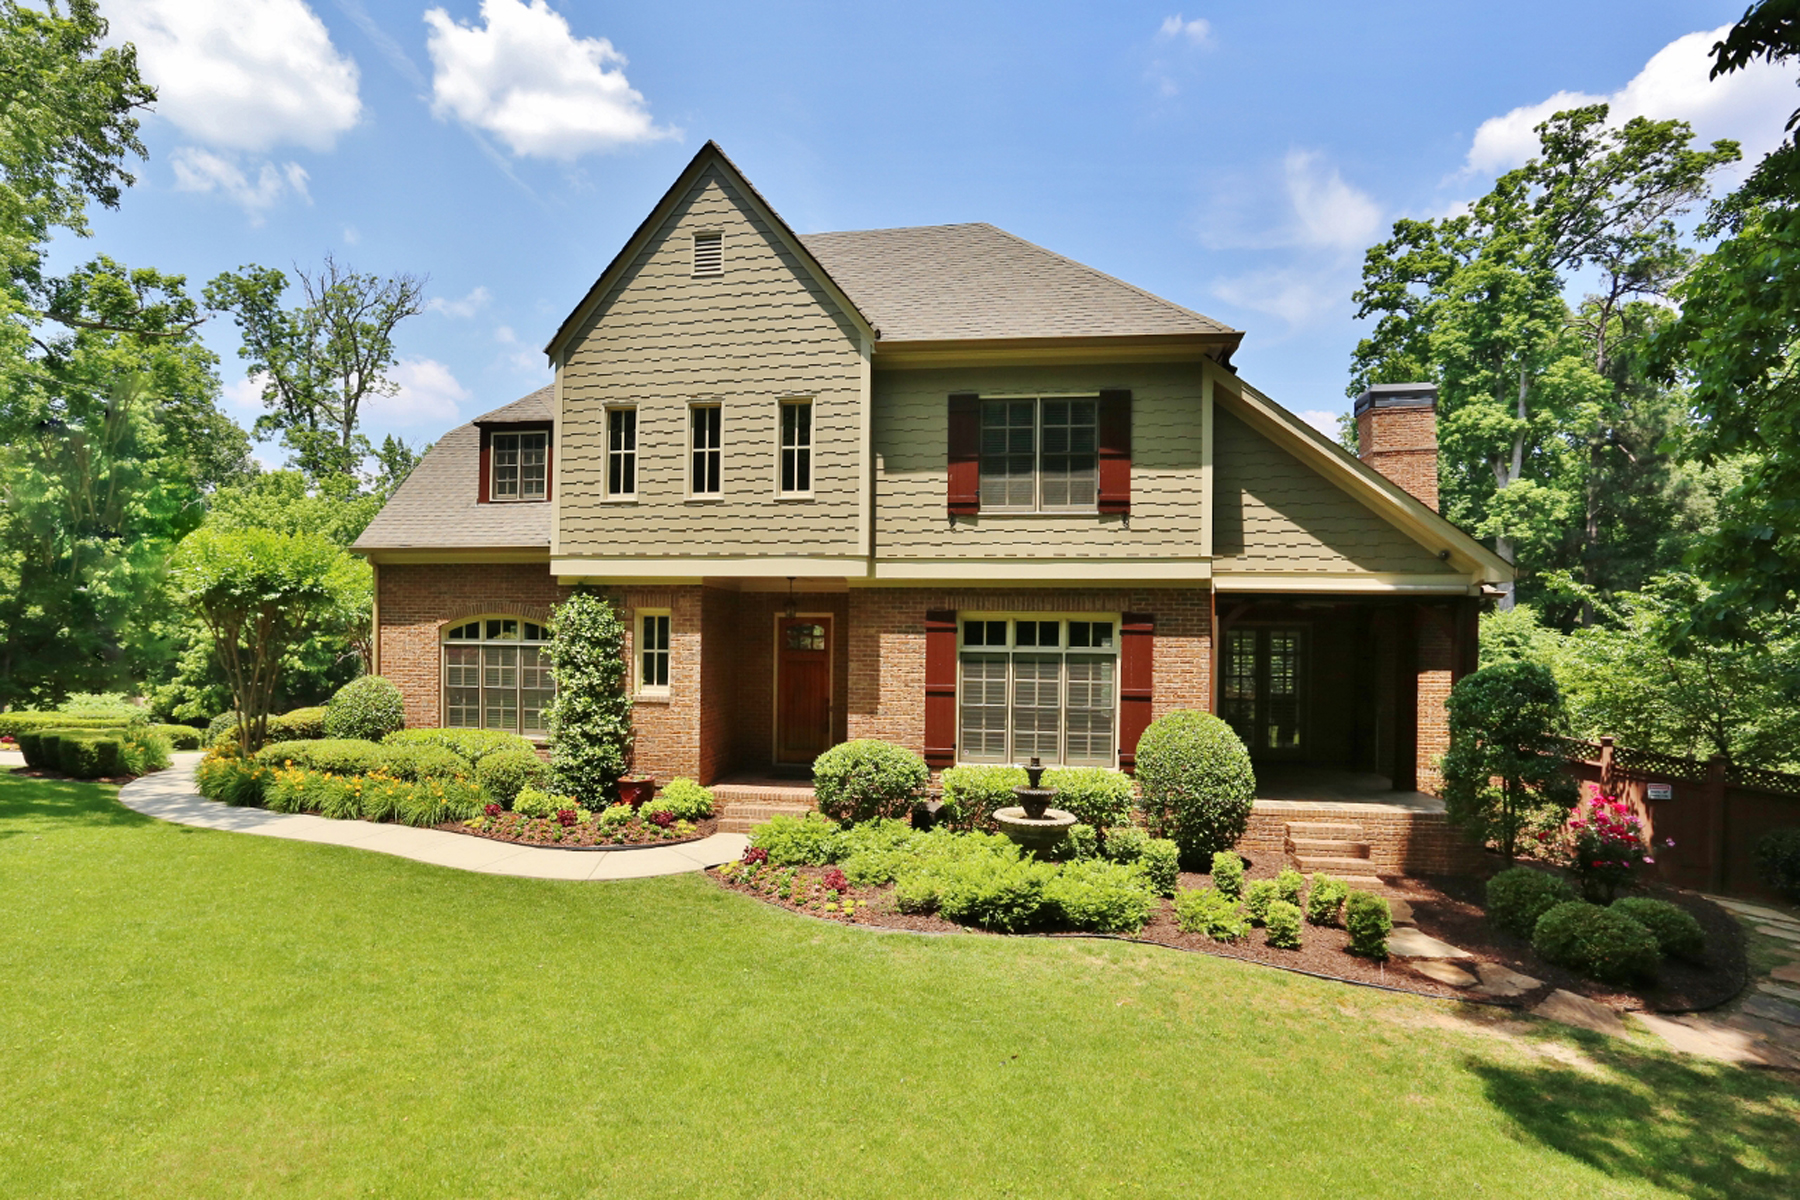 Single Family Home for Sale at An Elegant Oasis With Pool and Gardens In Brookhaven, Only Moments From Buckhead 1945 Woodsdale Road NE Brookhaven, Georgia 30324 United States